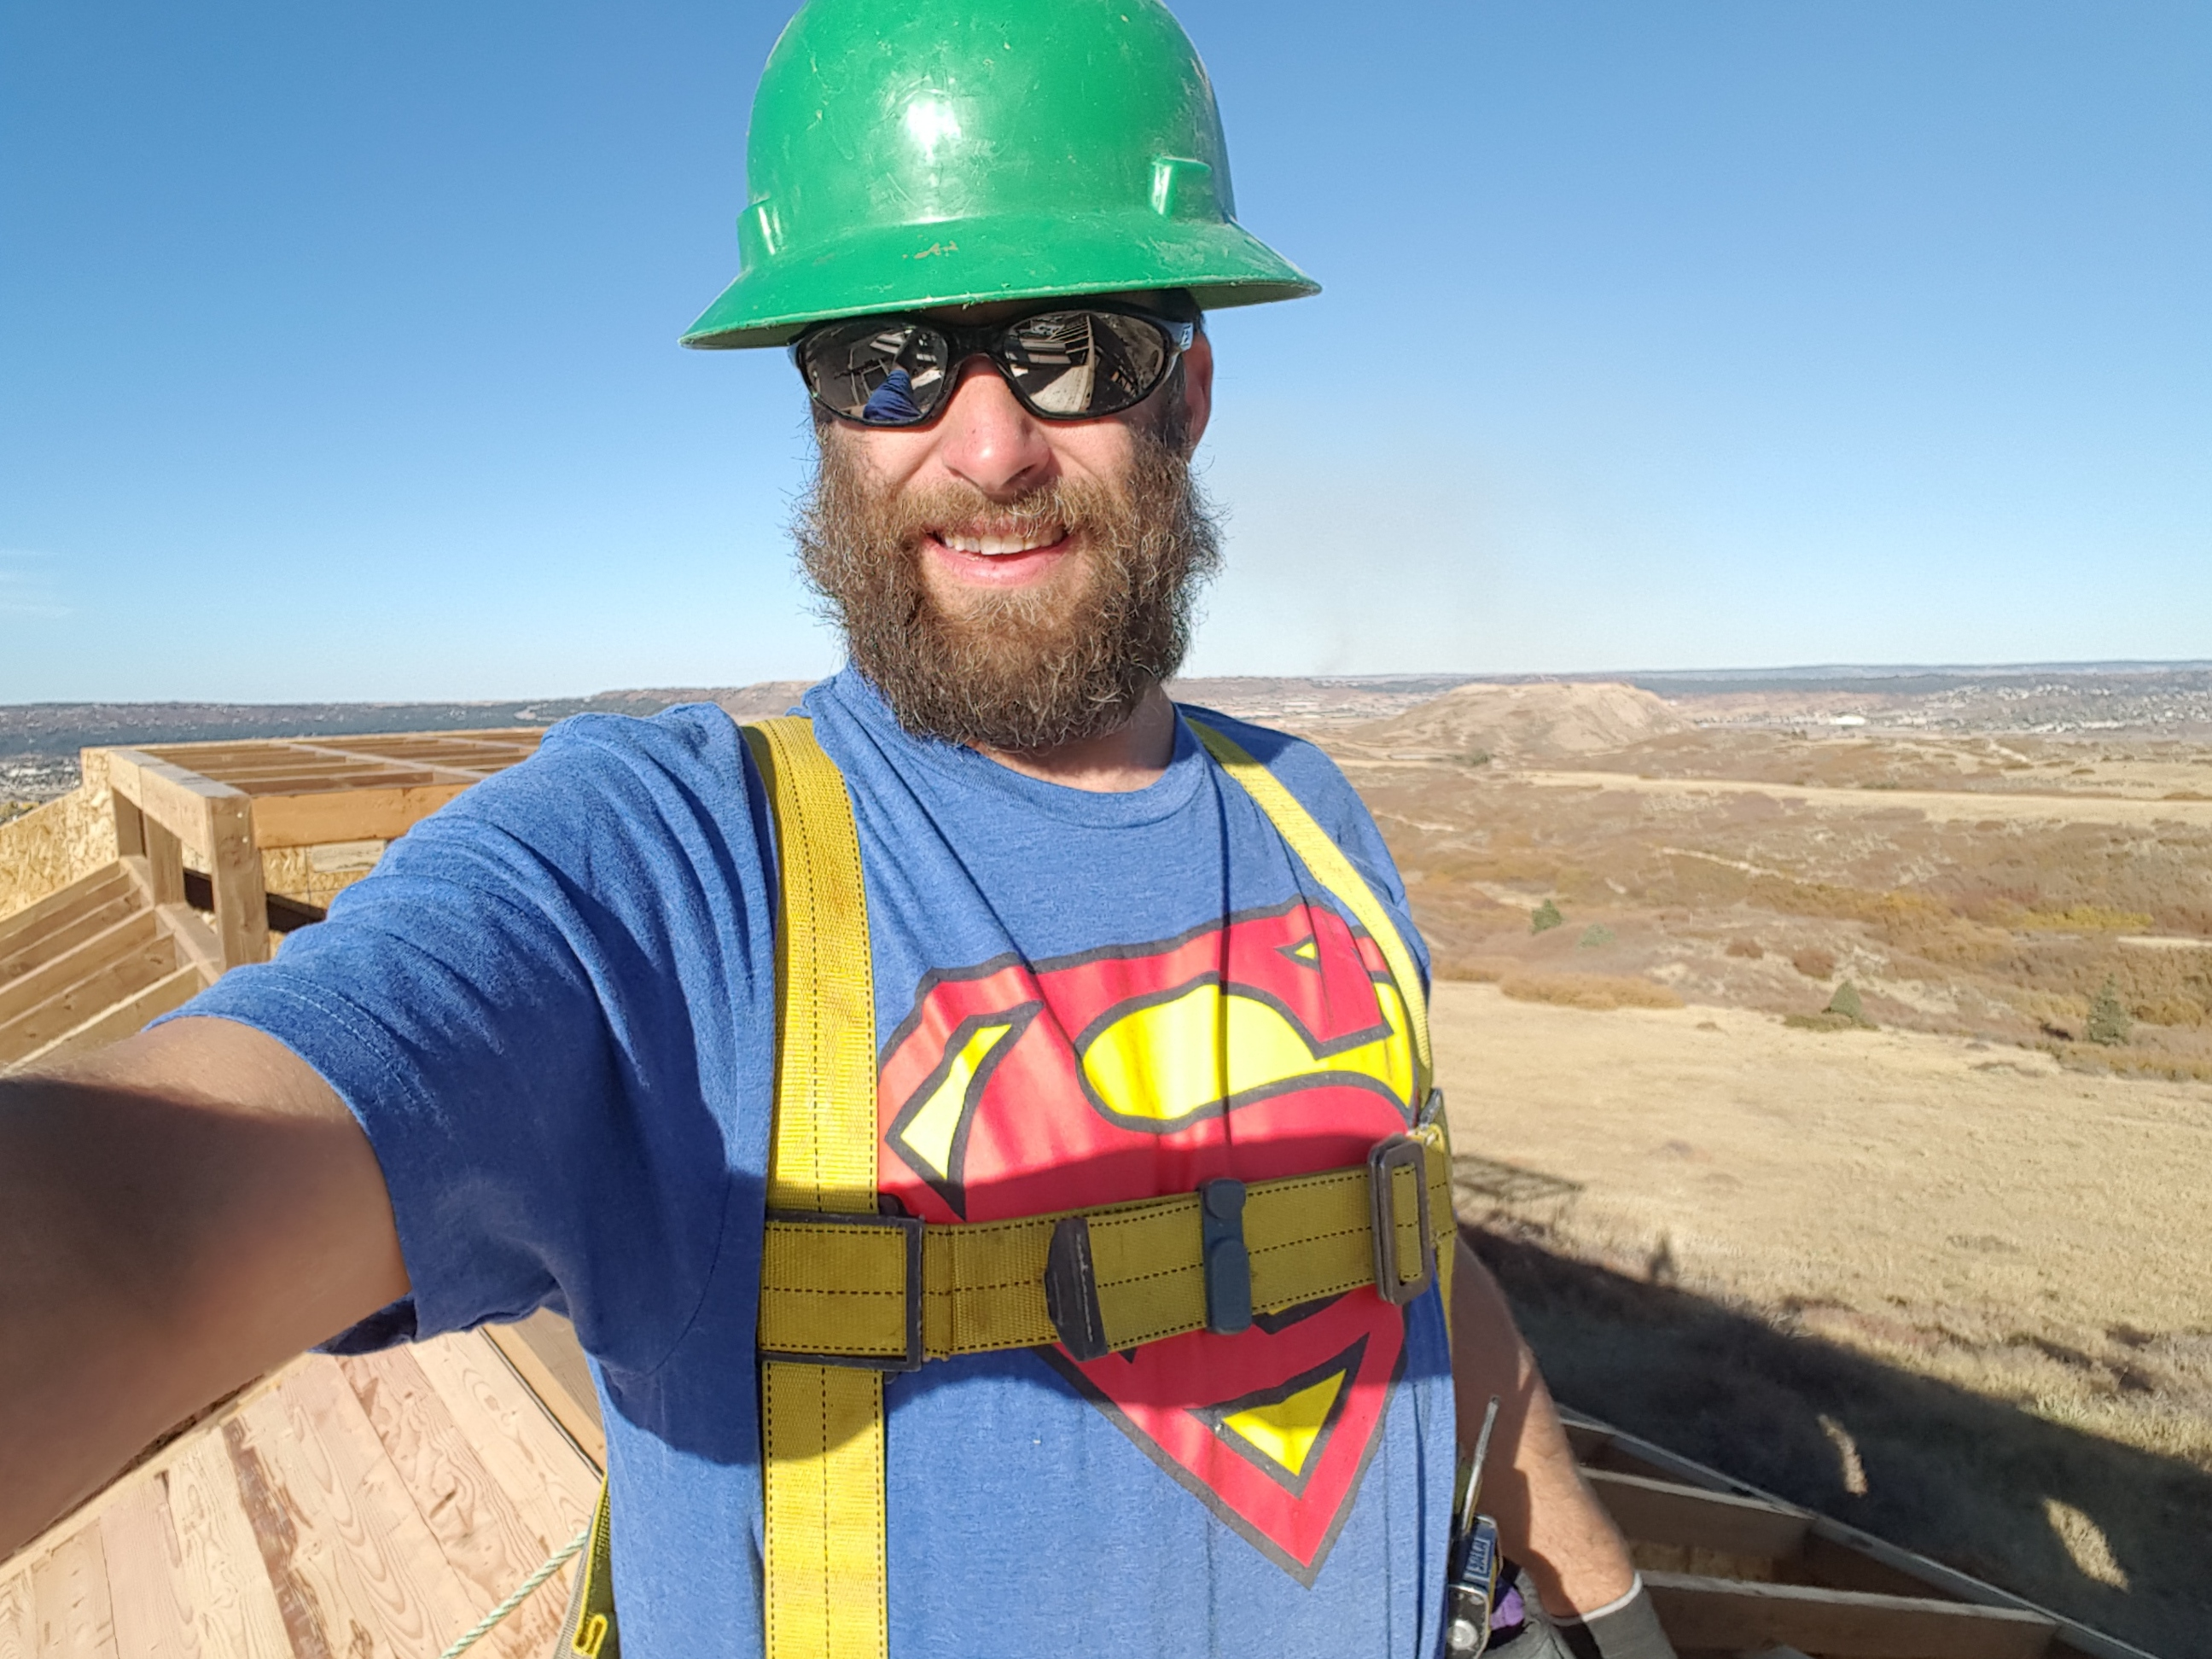 Mike models a Superman t-shirt, a fun gift from a vendor, while installing t&g on the barn roof.